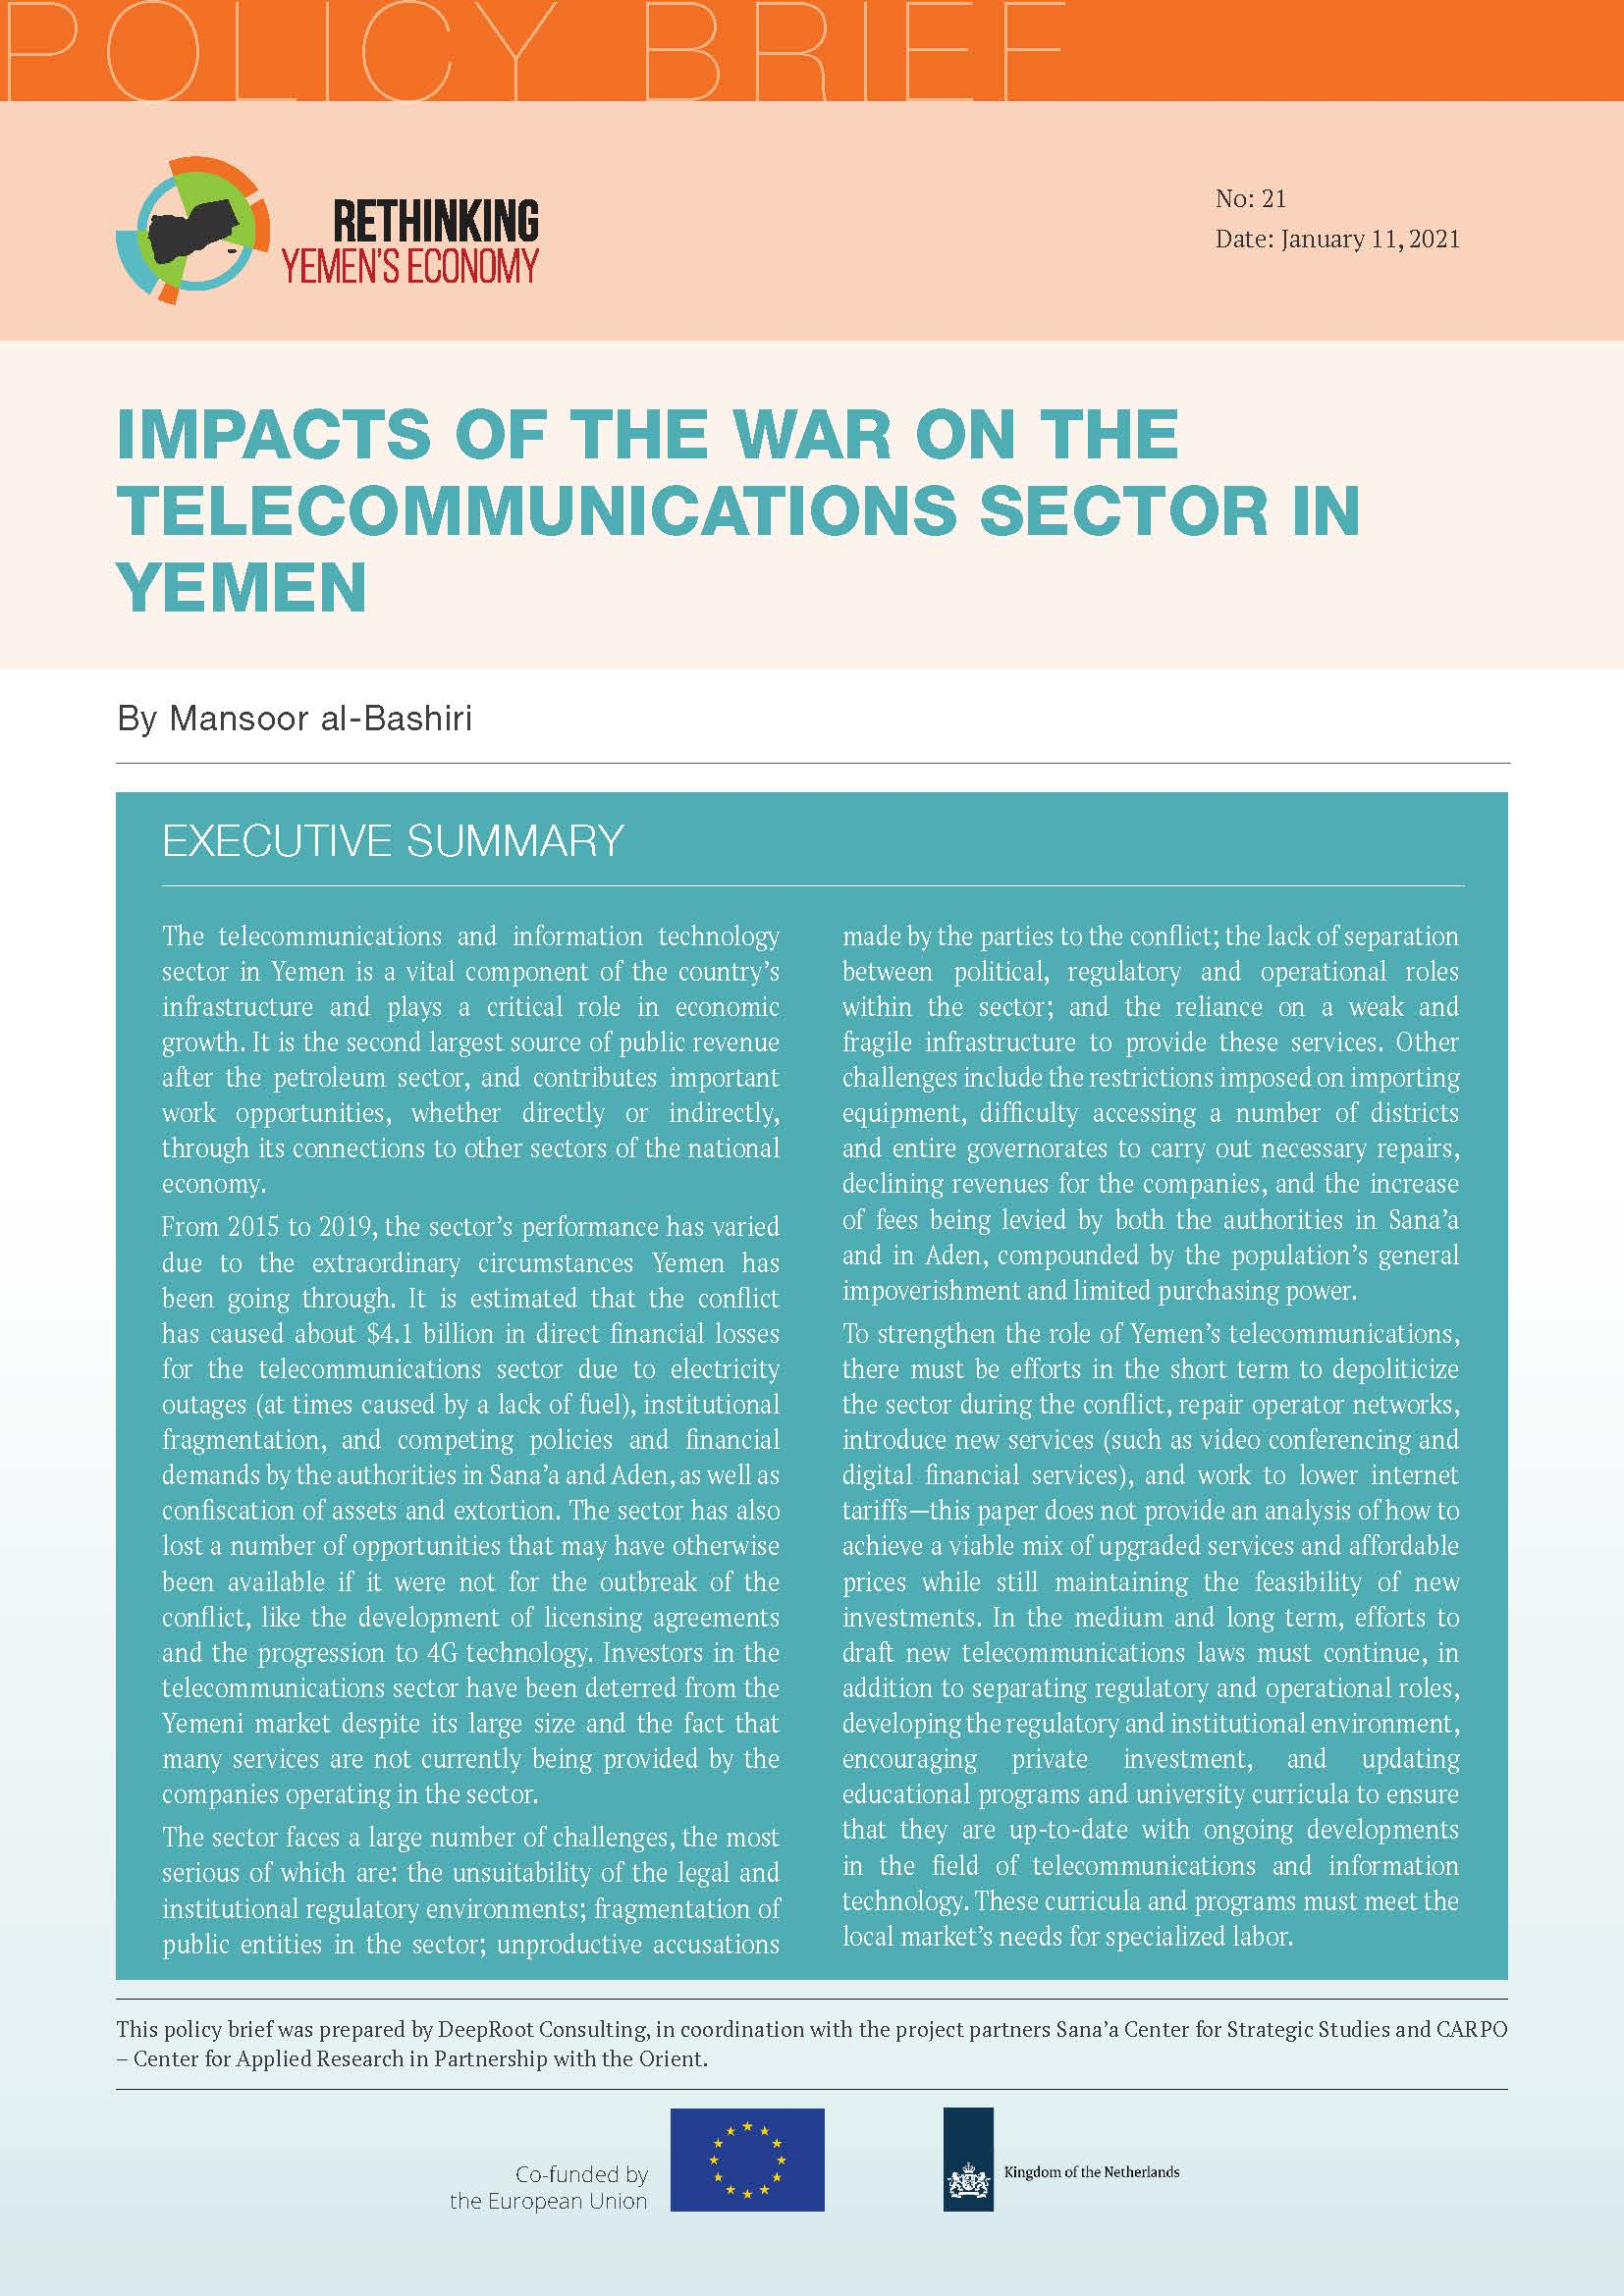 Impacts of the War on the Telecommunications Sector in Yemen